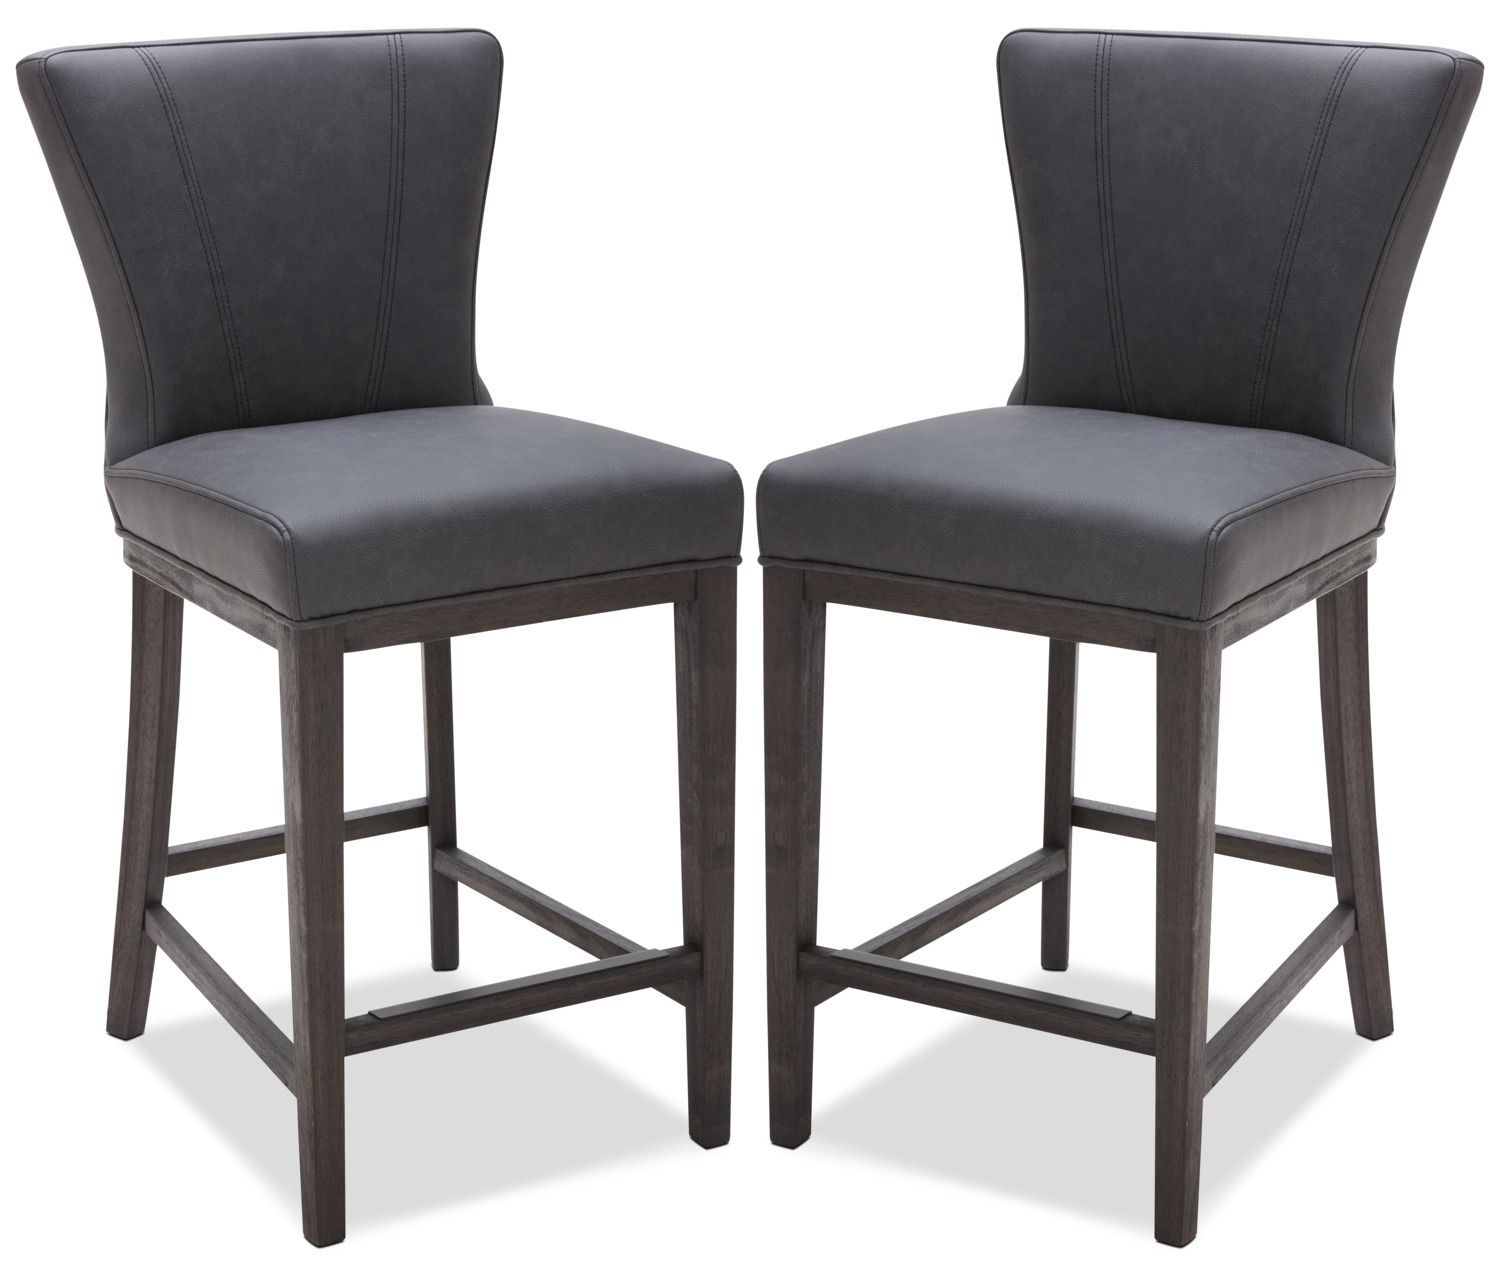 Quinn counter height stool set of 2 grey